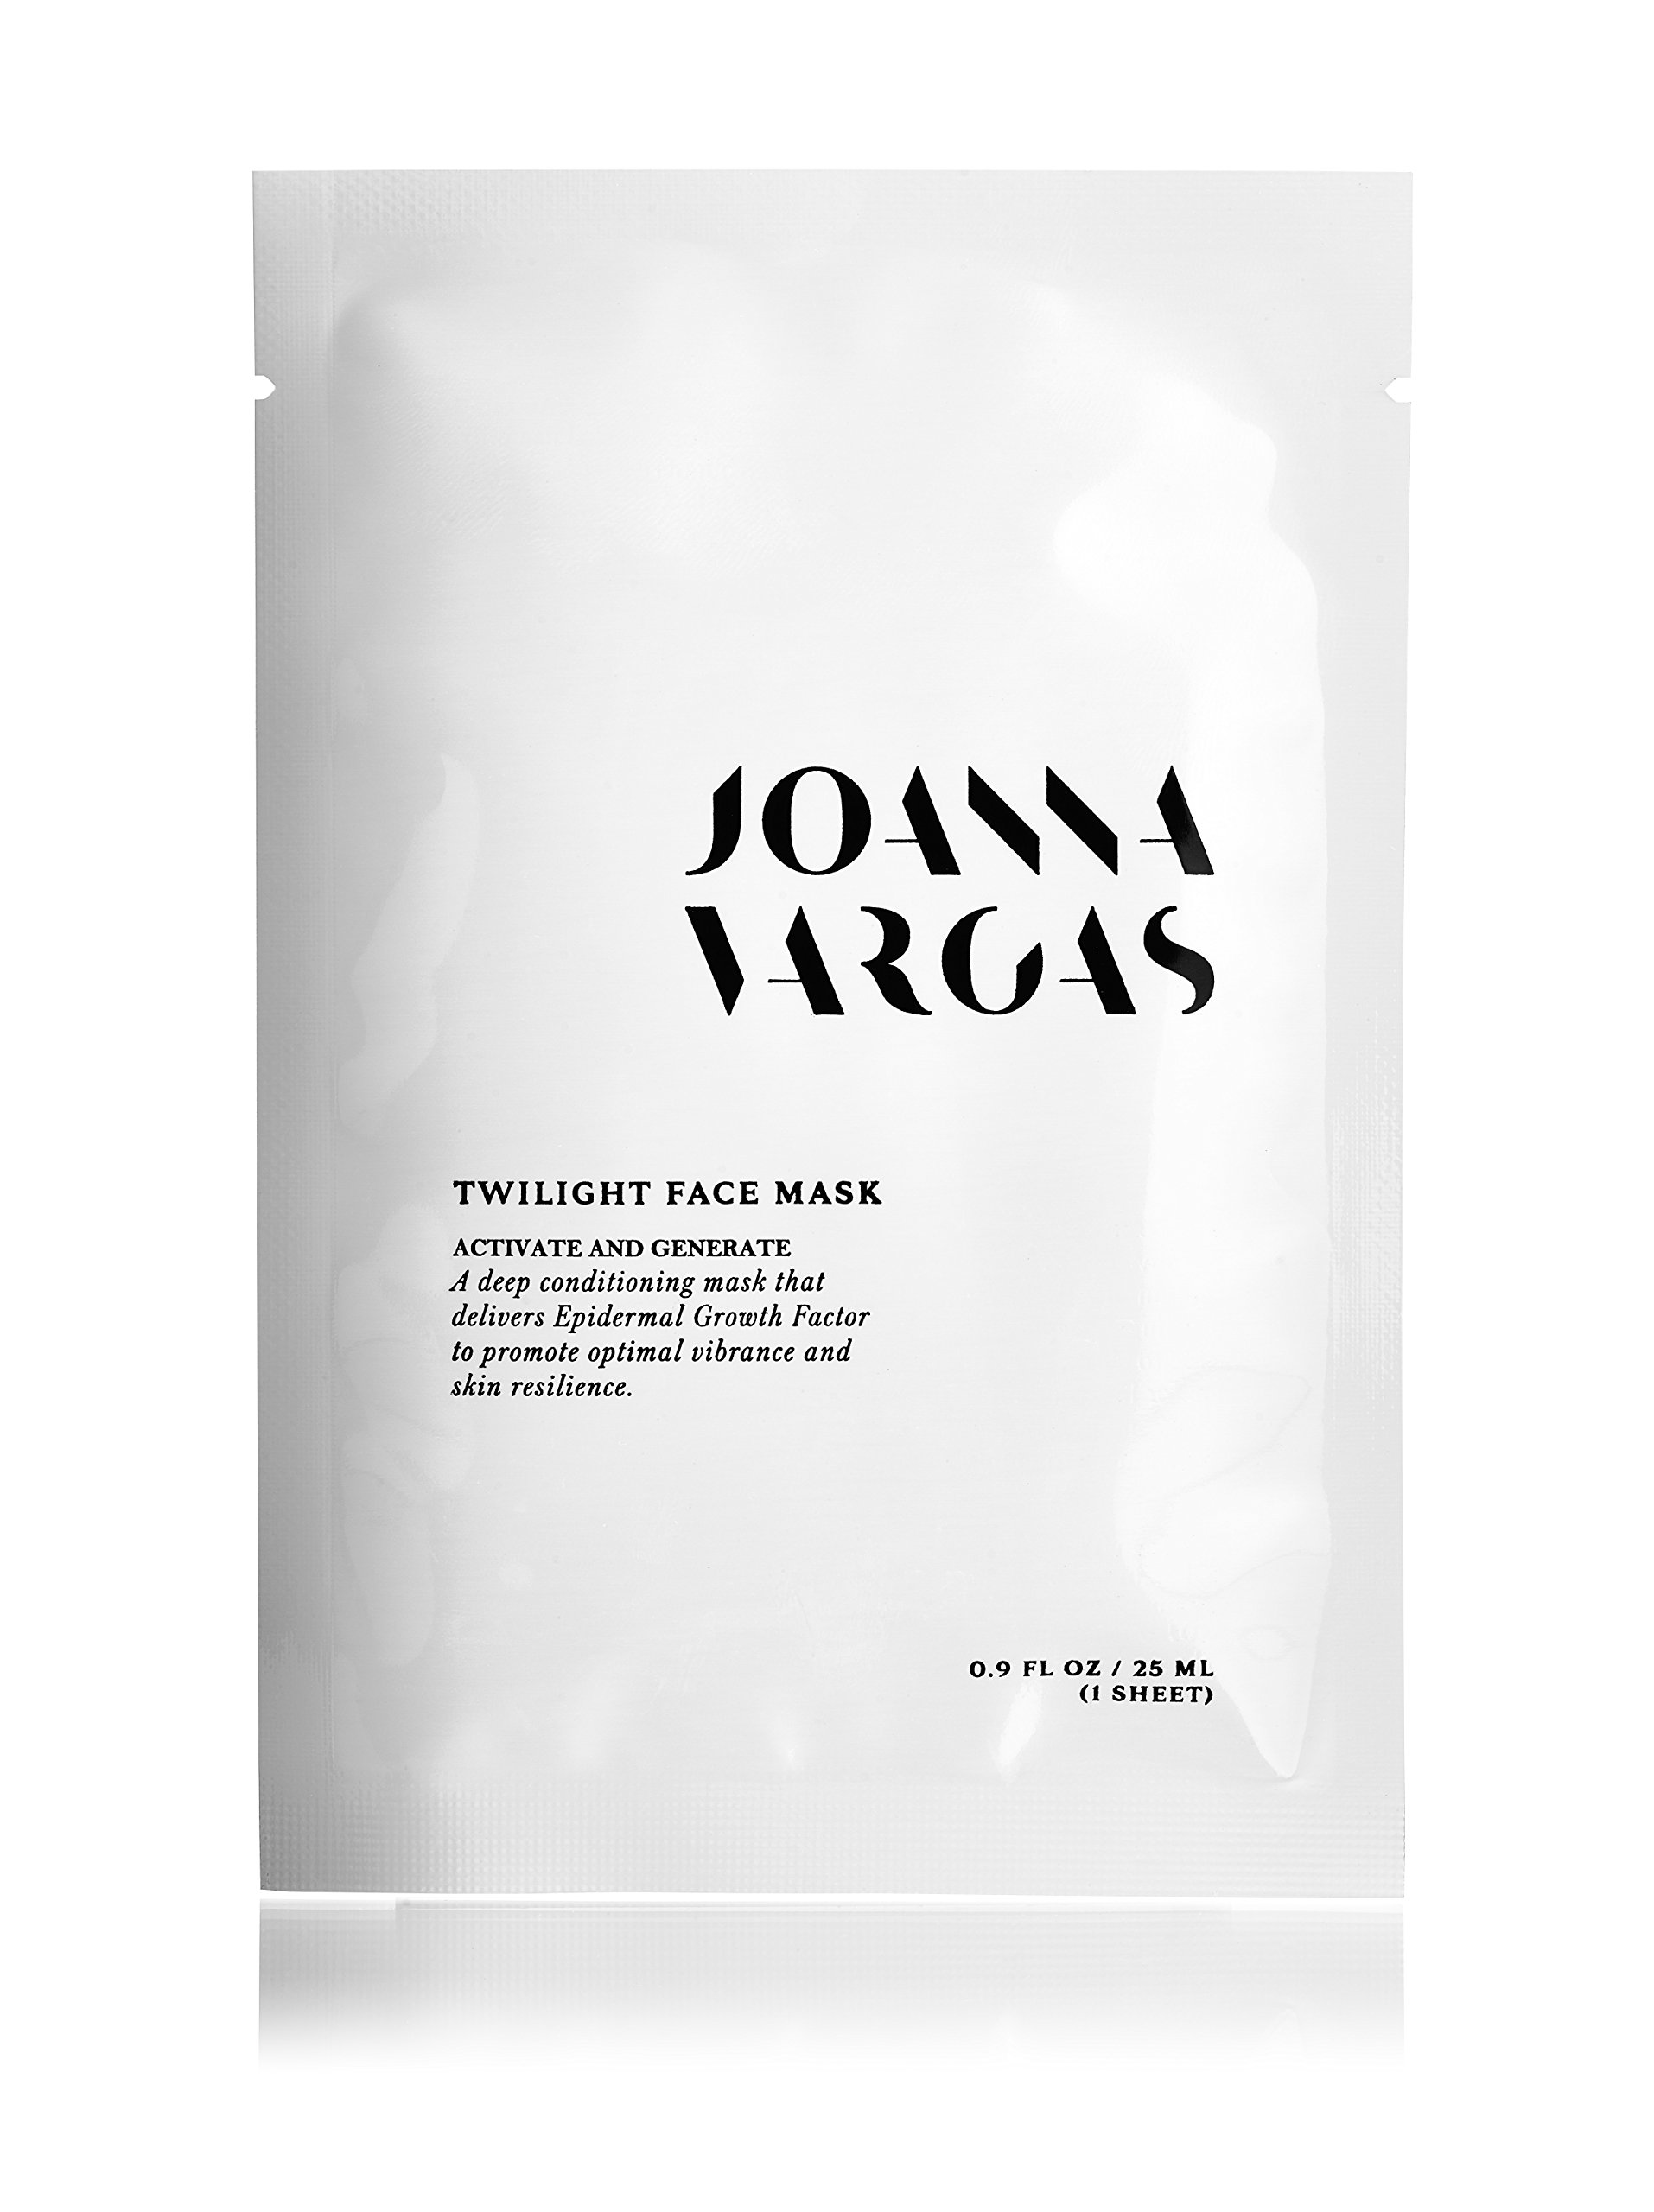 The Joanna Vargas Twilight Epidermal Growth Factor Face Mask Will Help You Get Rid Of Wrinkles - Moisturizers with Peptides - Amino Acids by Joanna Vargas Skin Care